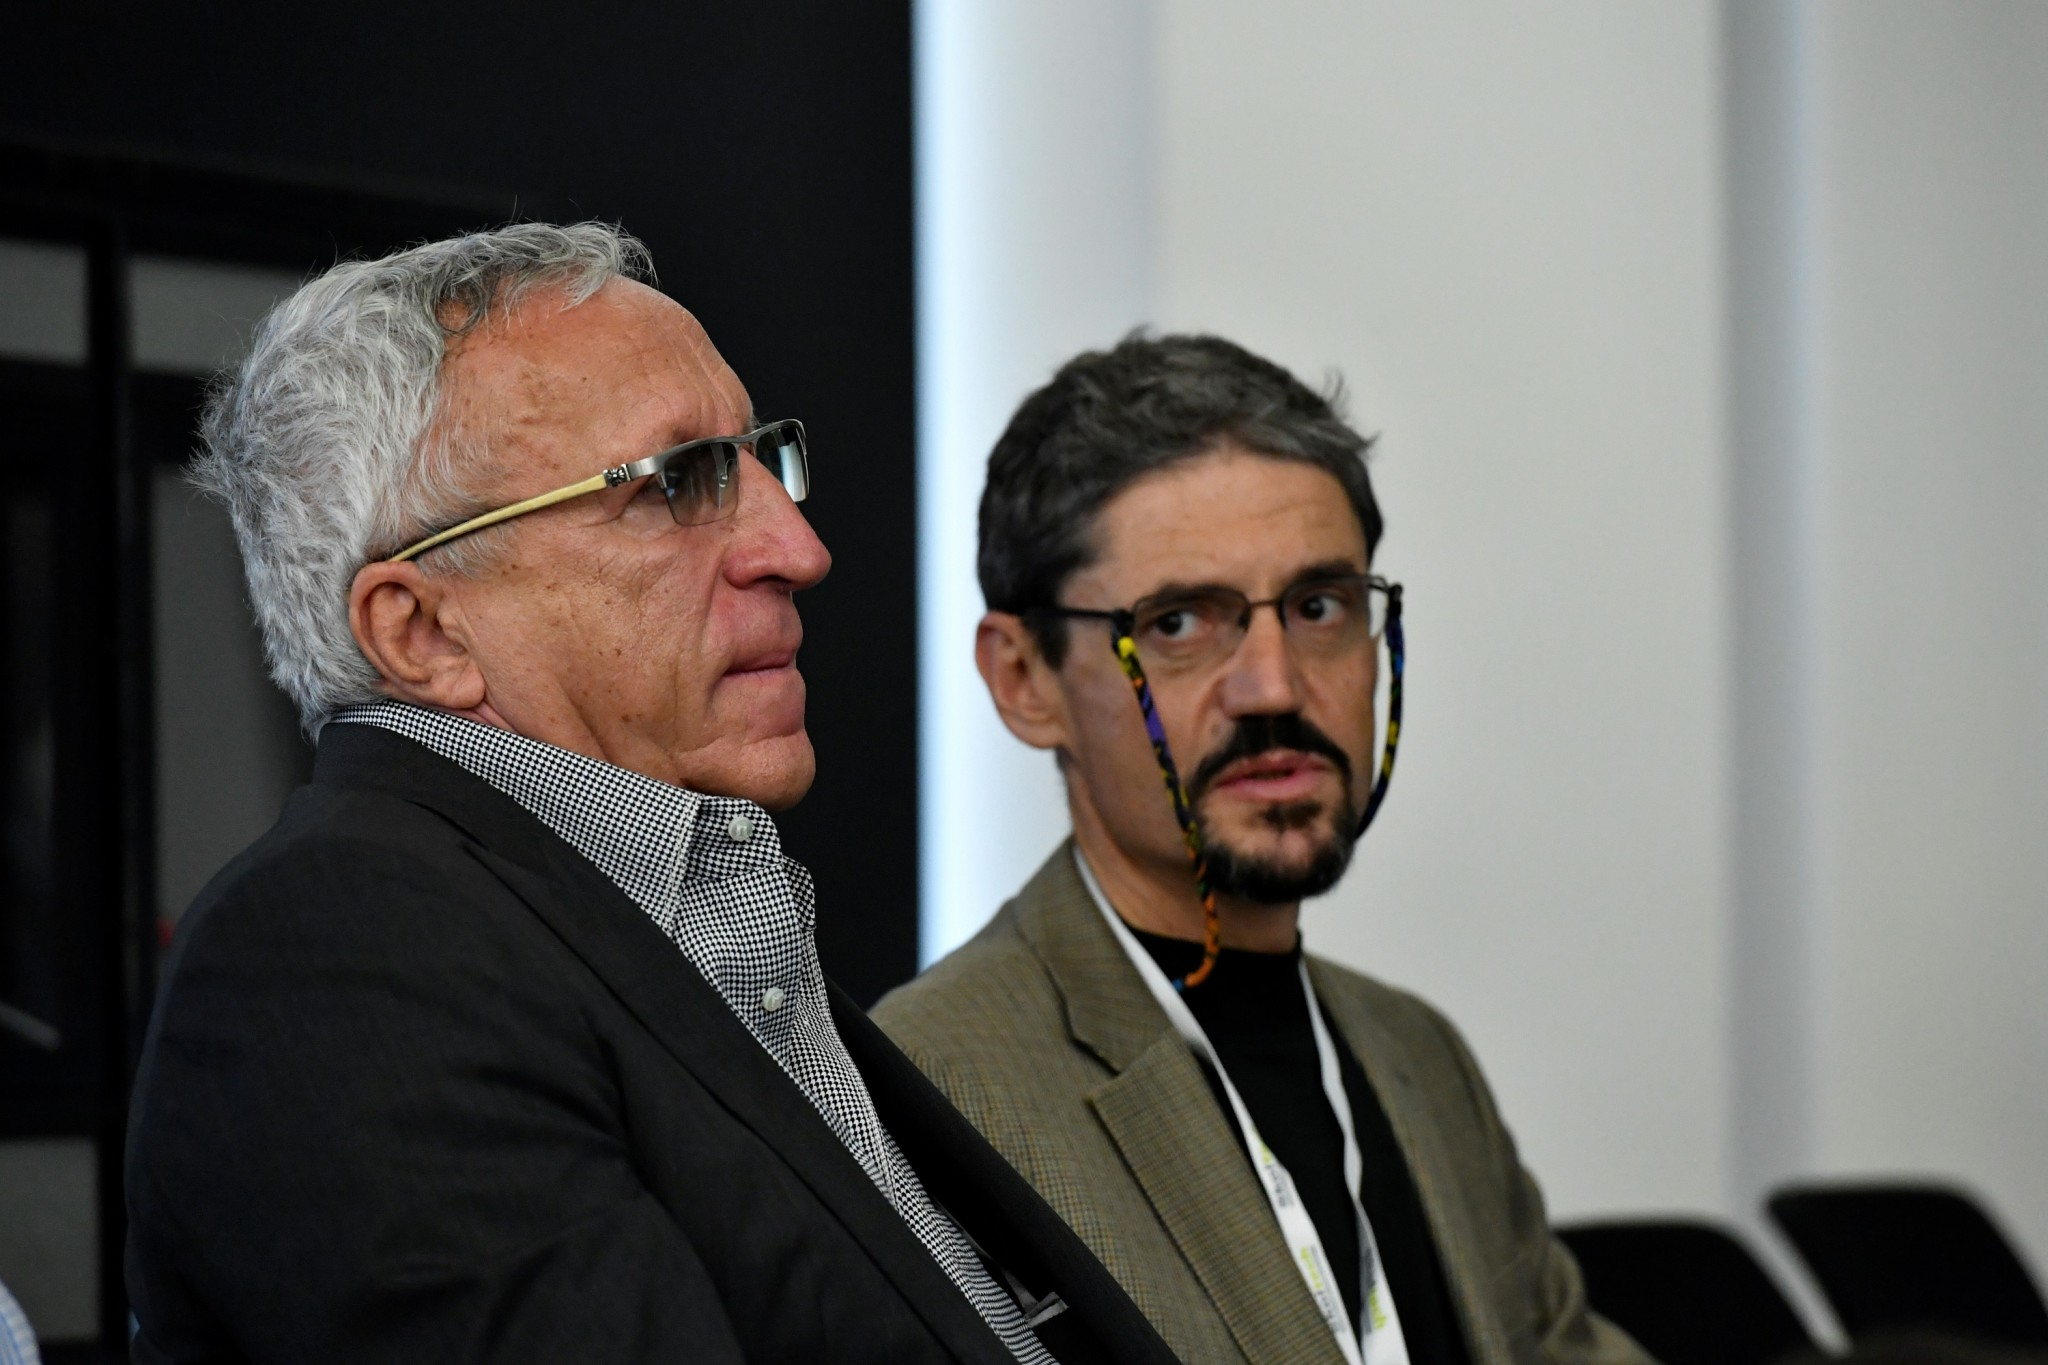 Skoltech President Alexander Kuleshov (left) and Professor Mikhail Chertkov pictured during the conference. Photo: Skoltech.